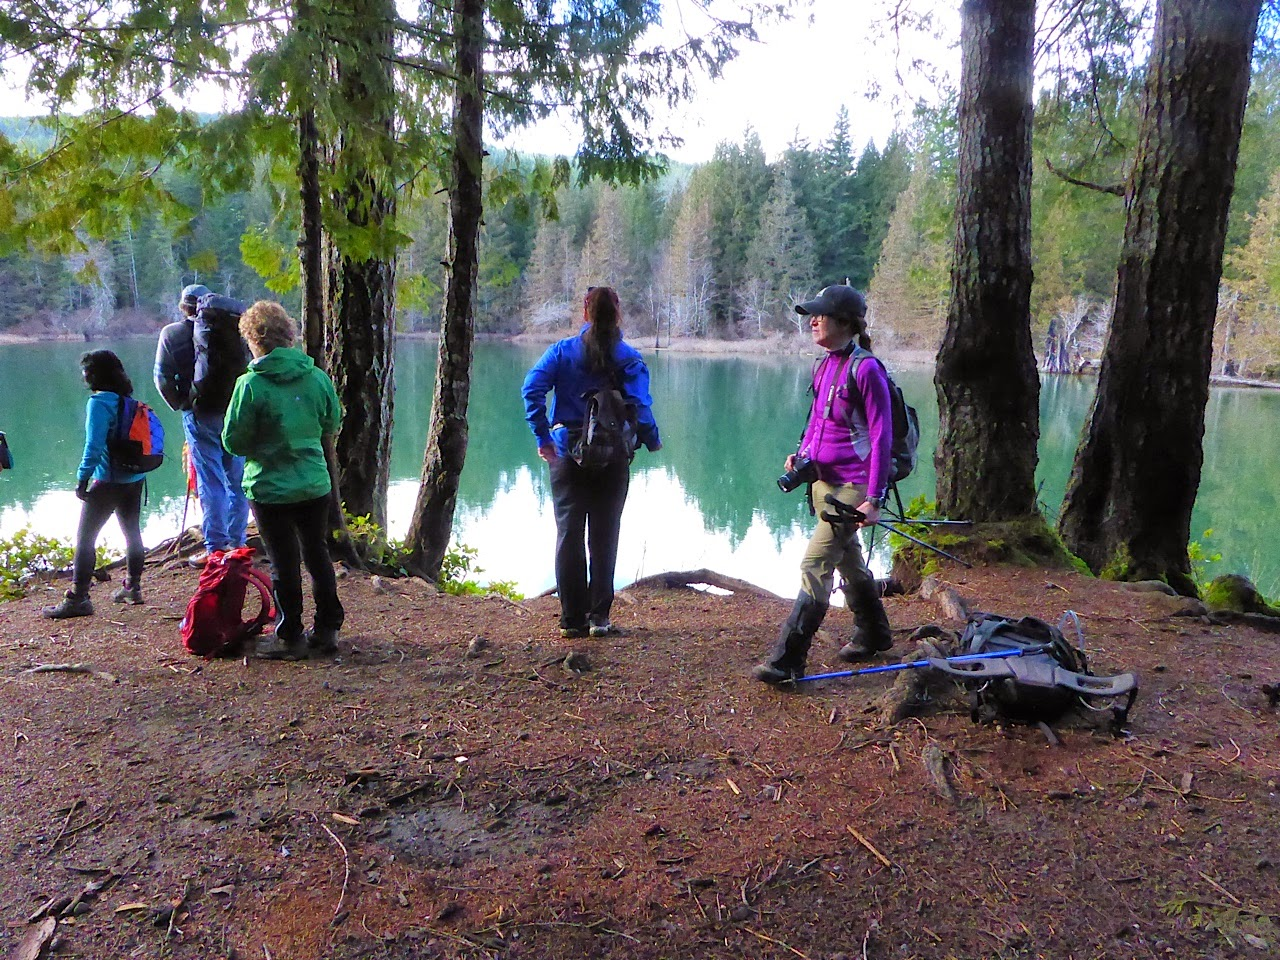 Island Mountain Ramblers hiking the Puntledge River in Courtenay